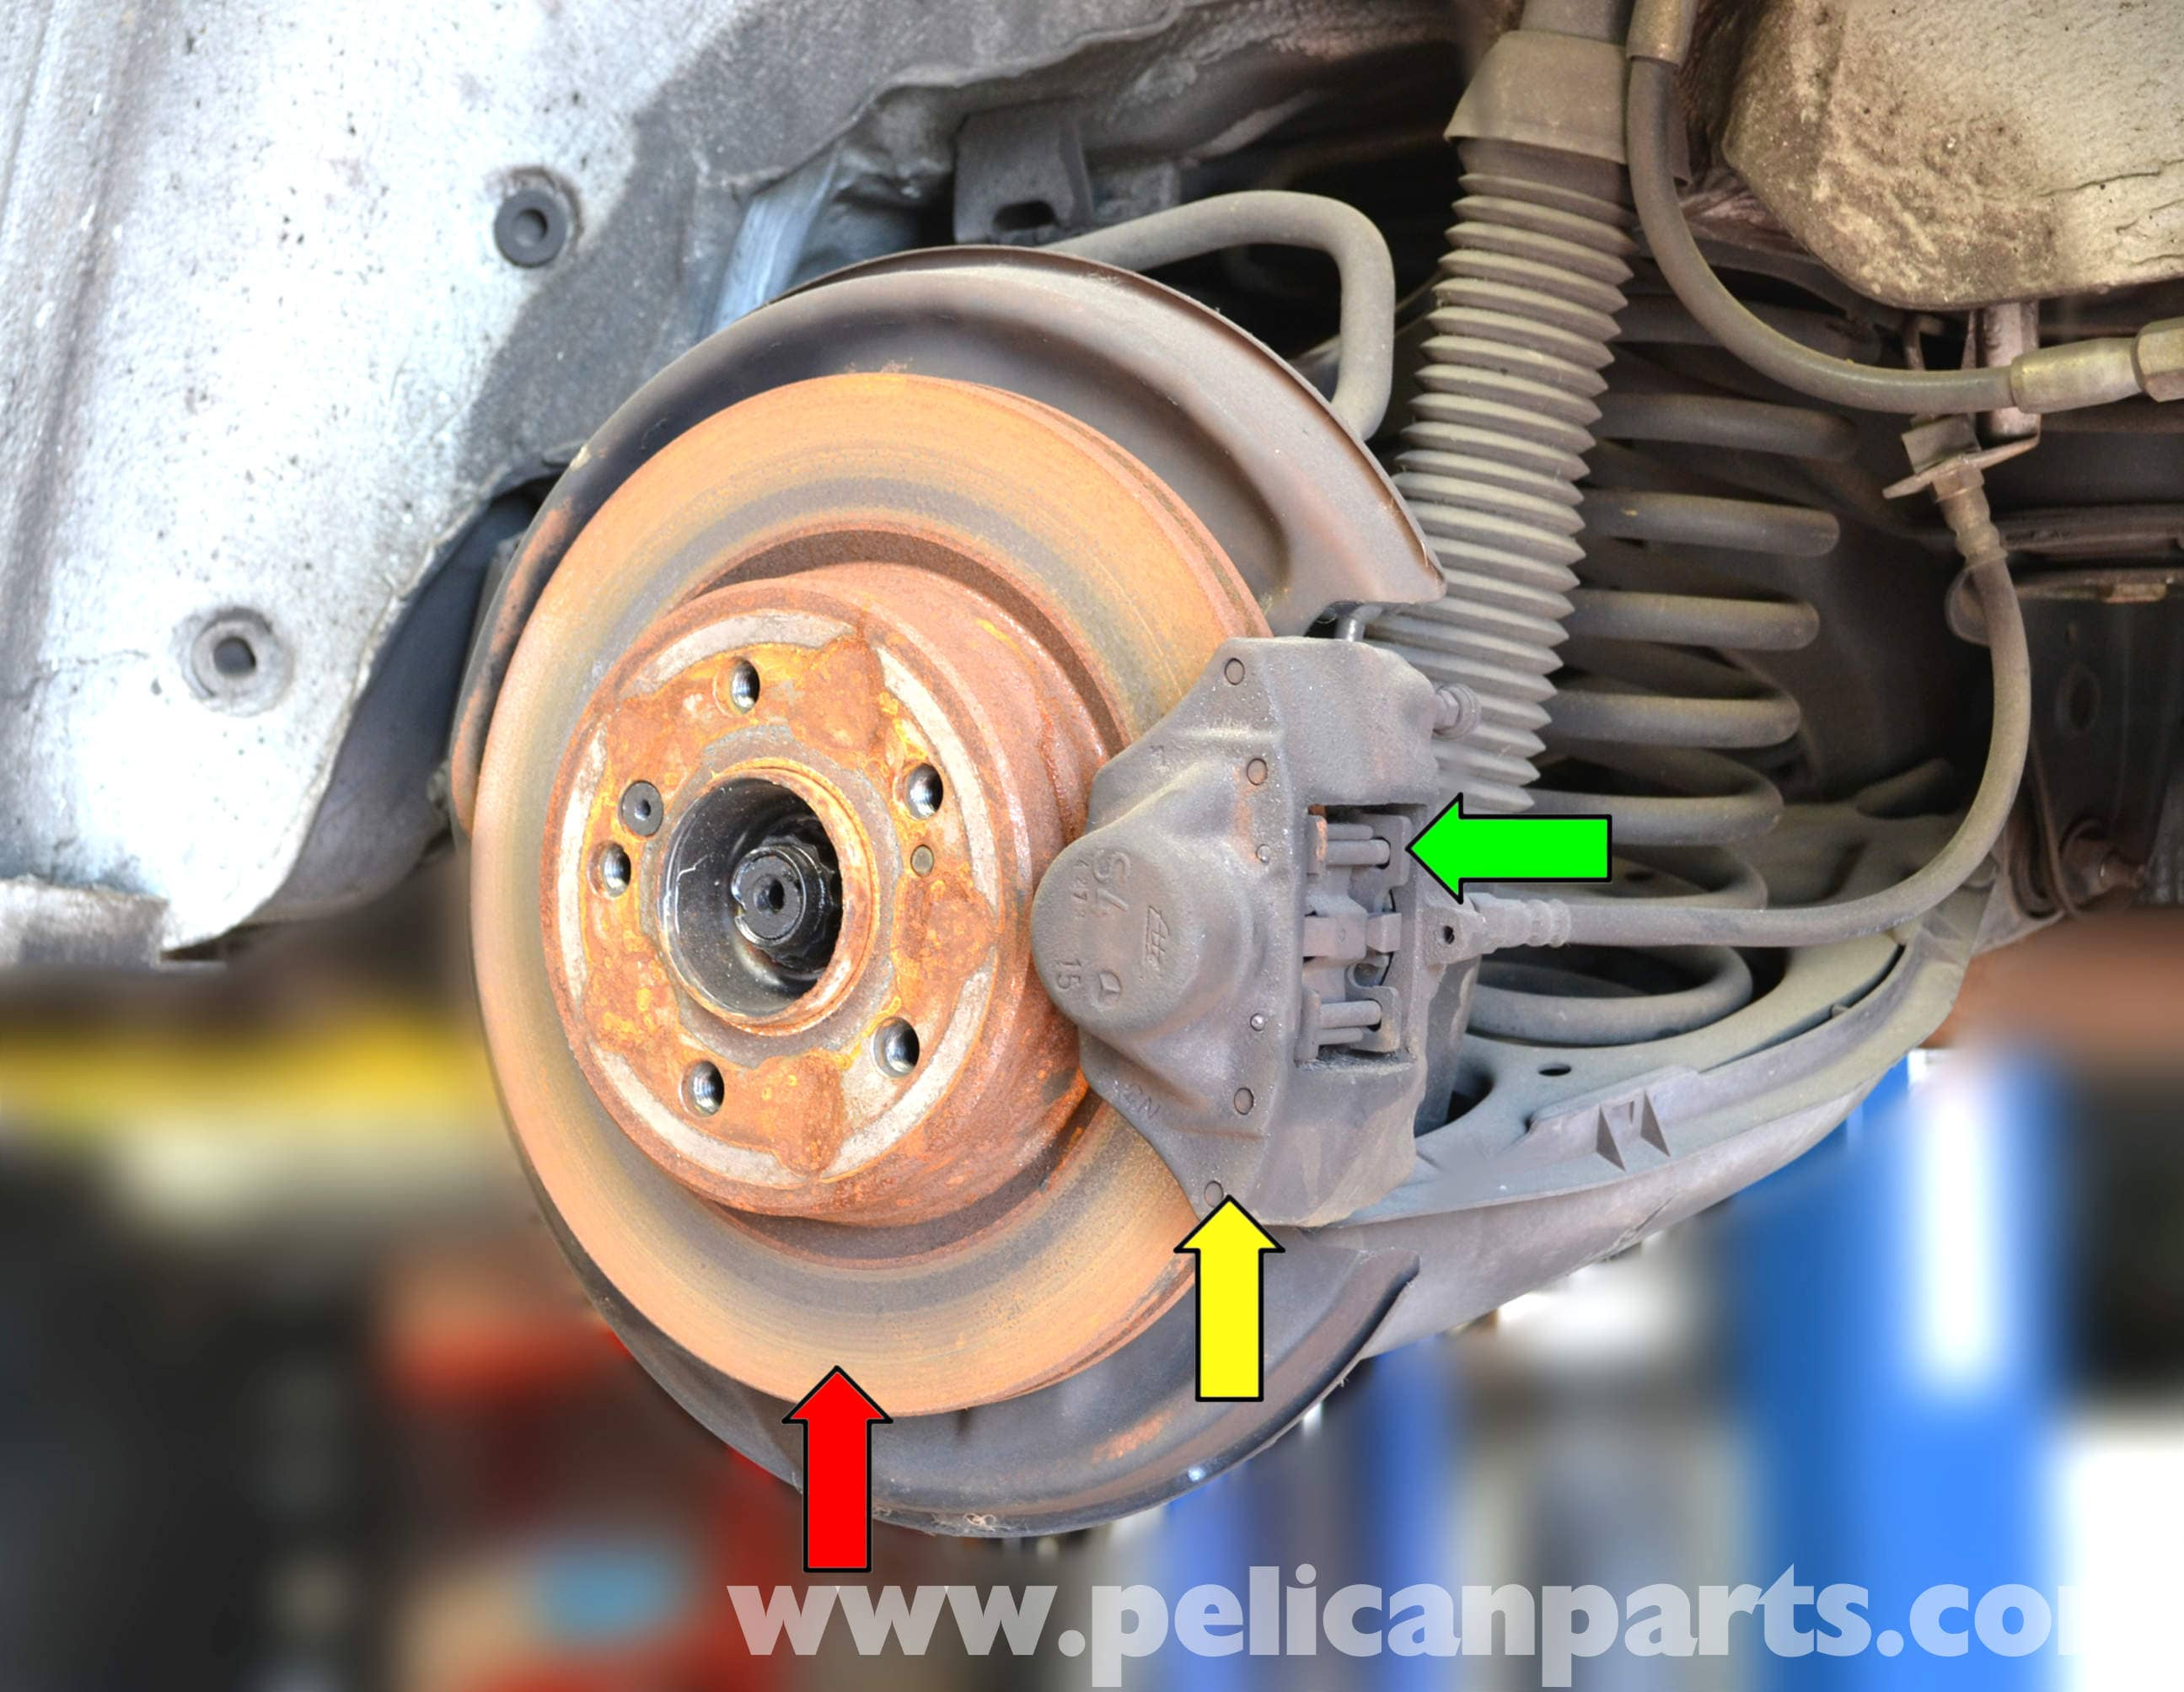 Mercedes benz w124 rear brake caliper replacement 1986 for Mercedes benz e350 brake pads replacement